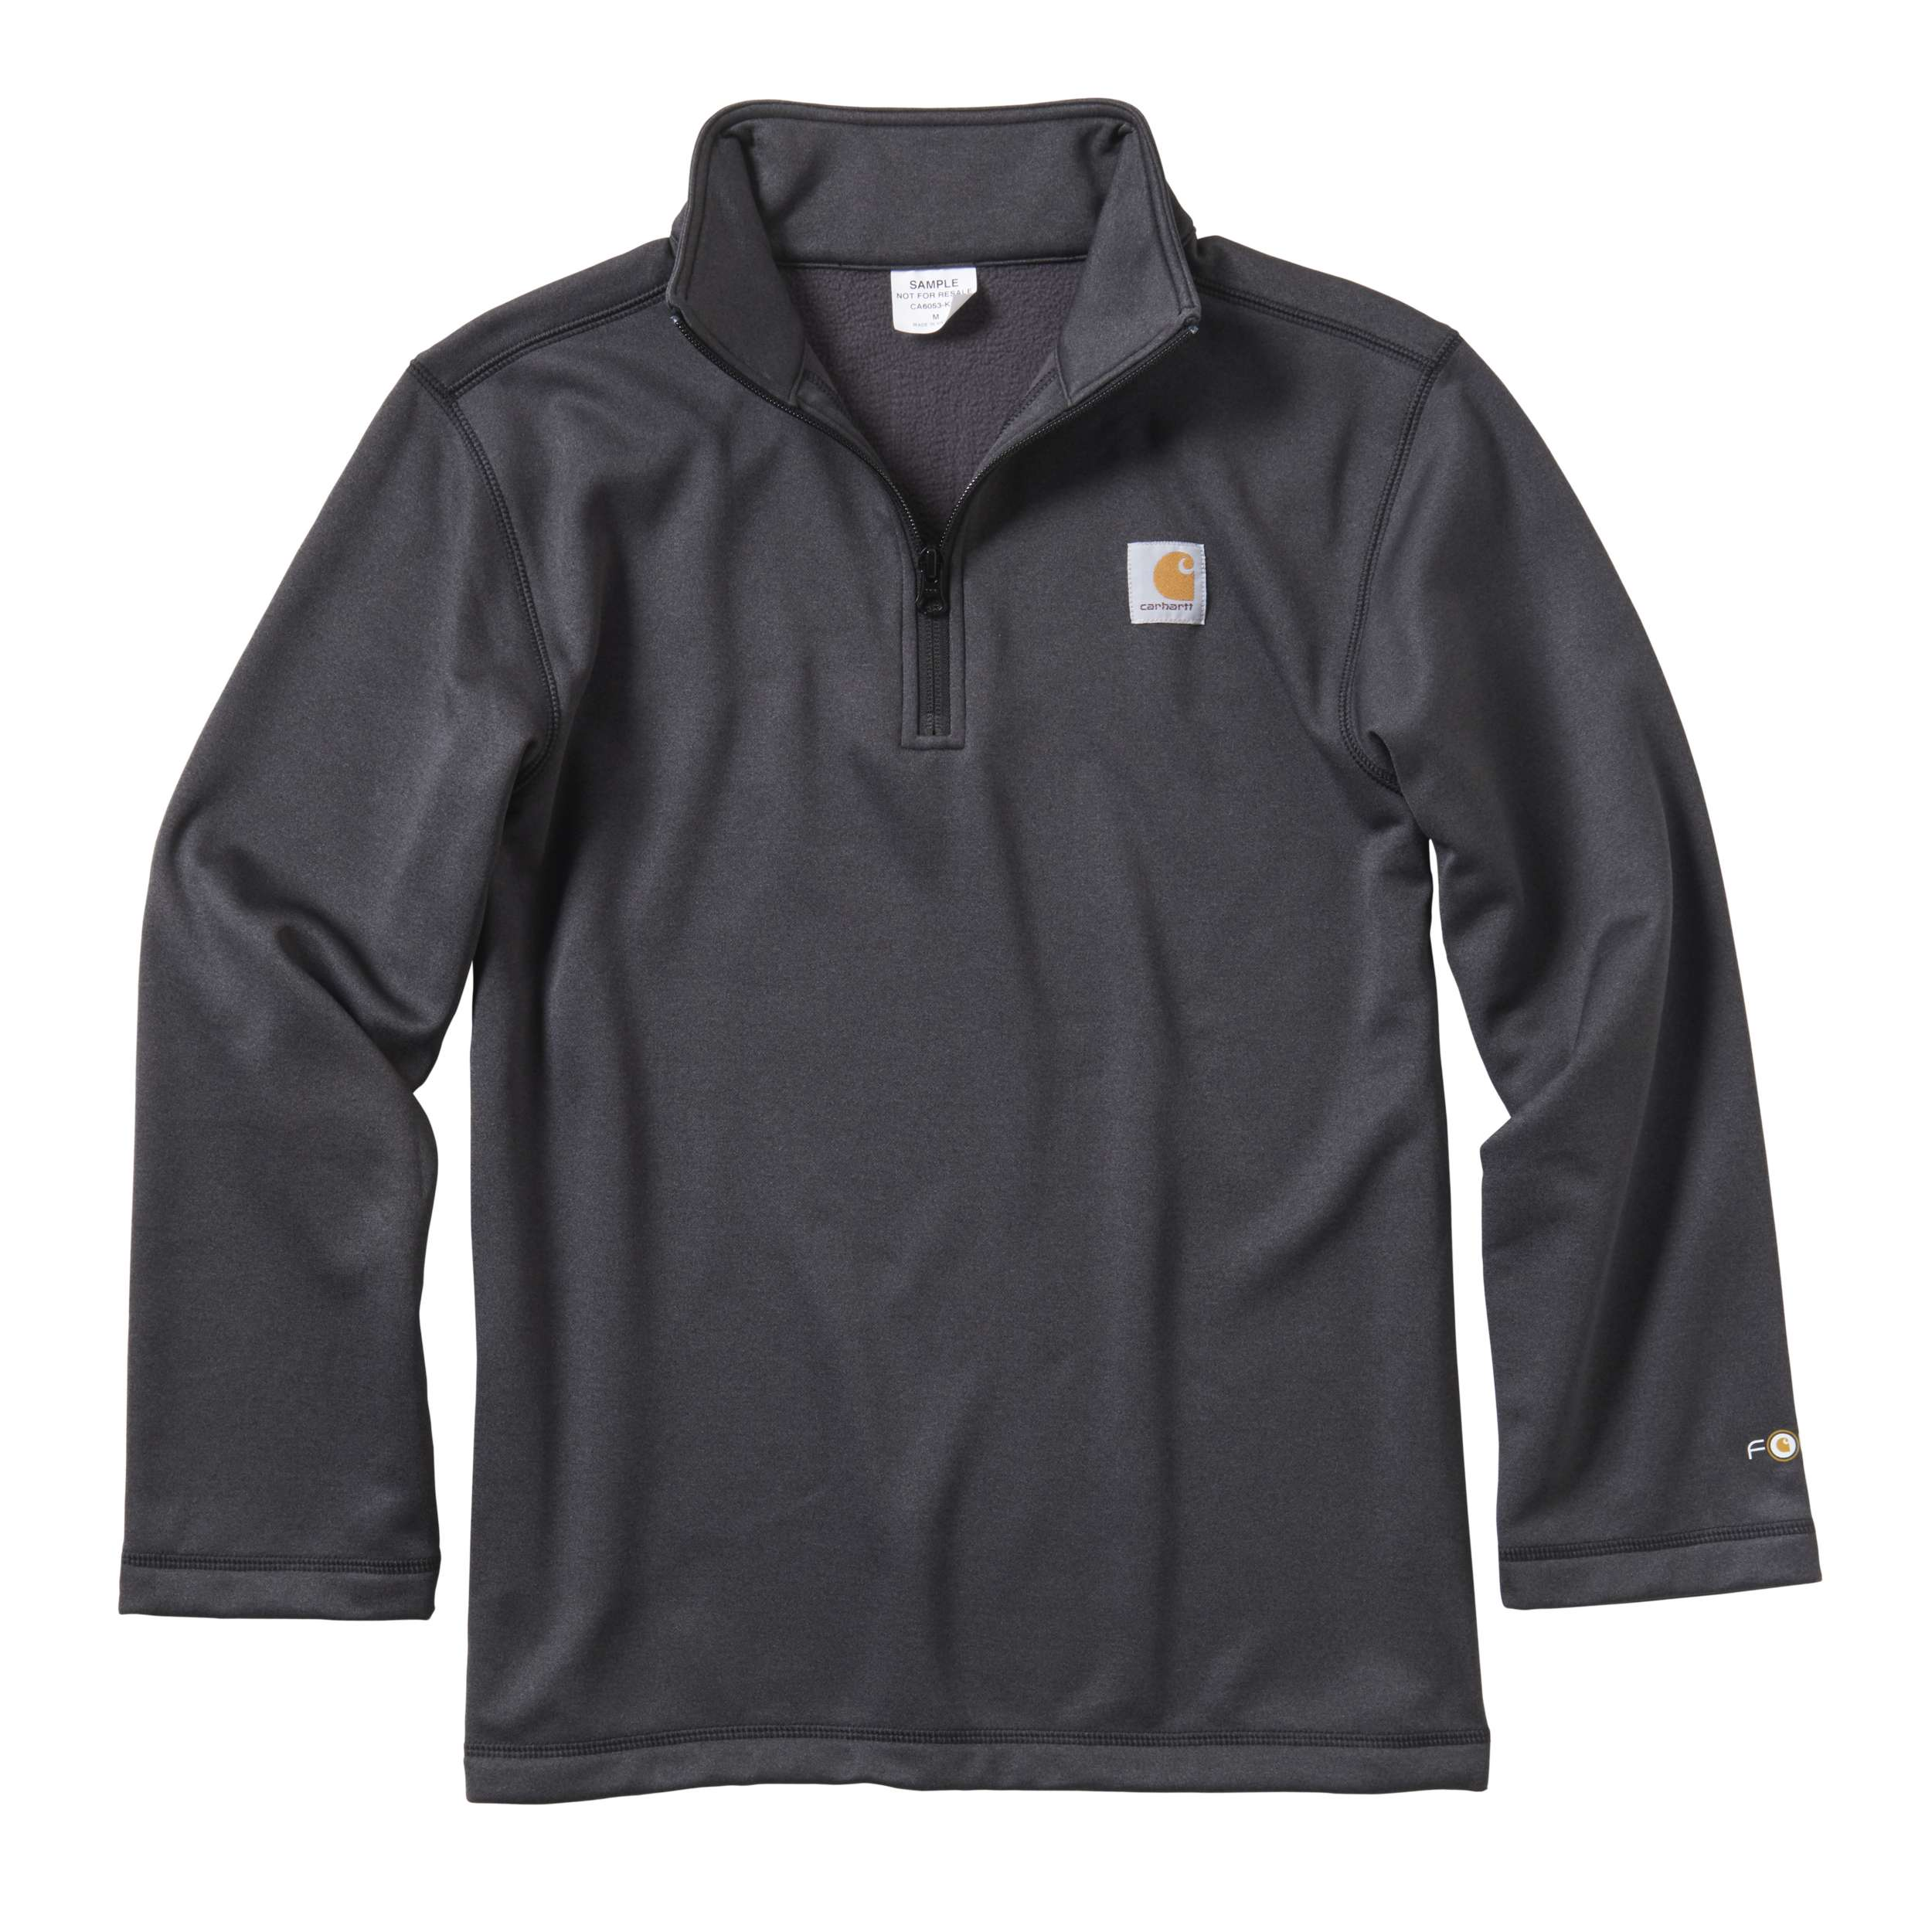 Carhartt Force Quarter Zip Sweatshirt